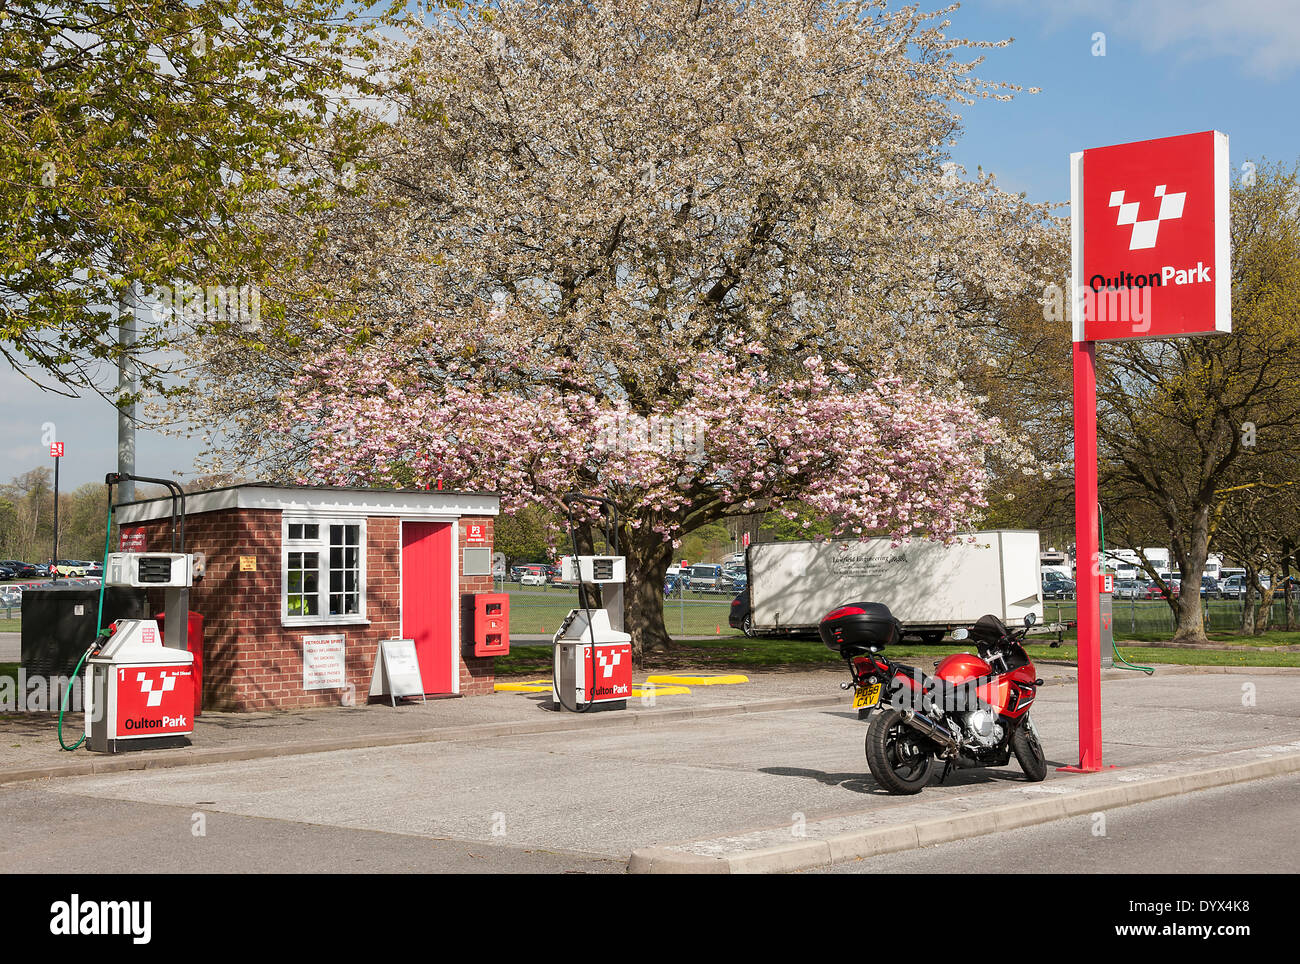 Small Filling Station Selling Diesel in the Paddock at Oulton Park Motor Racing Circuit Cheshire England United Kingdom UK - Stock Image